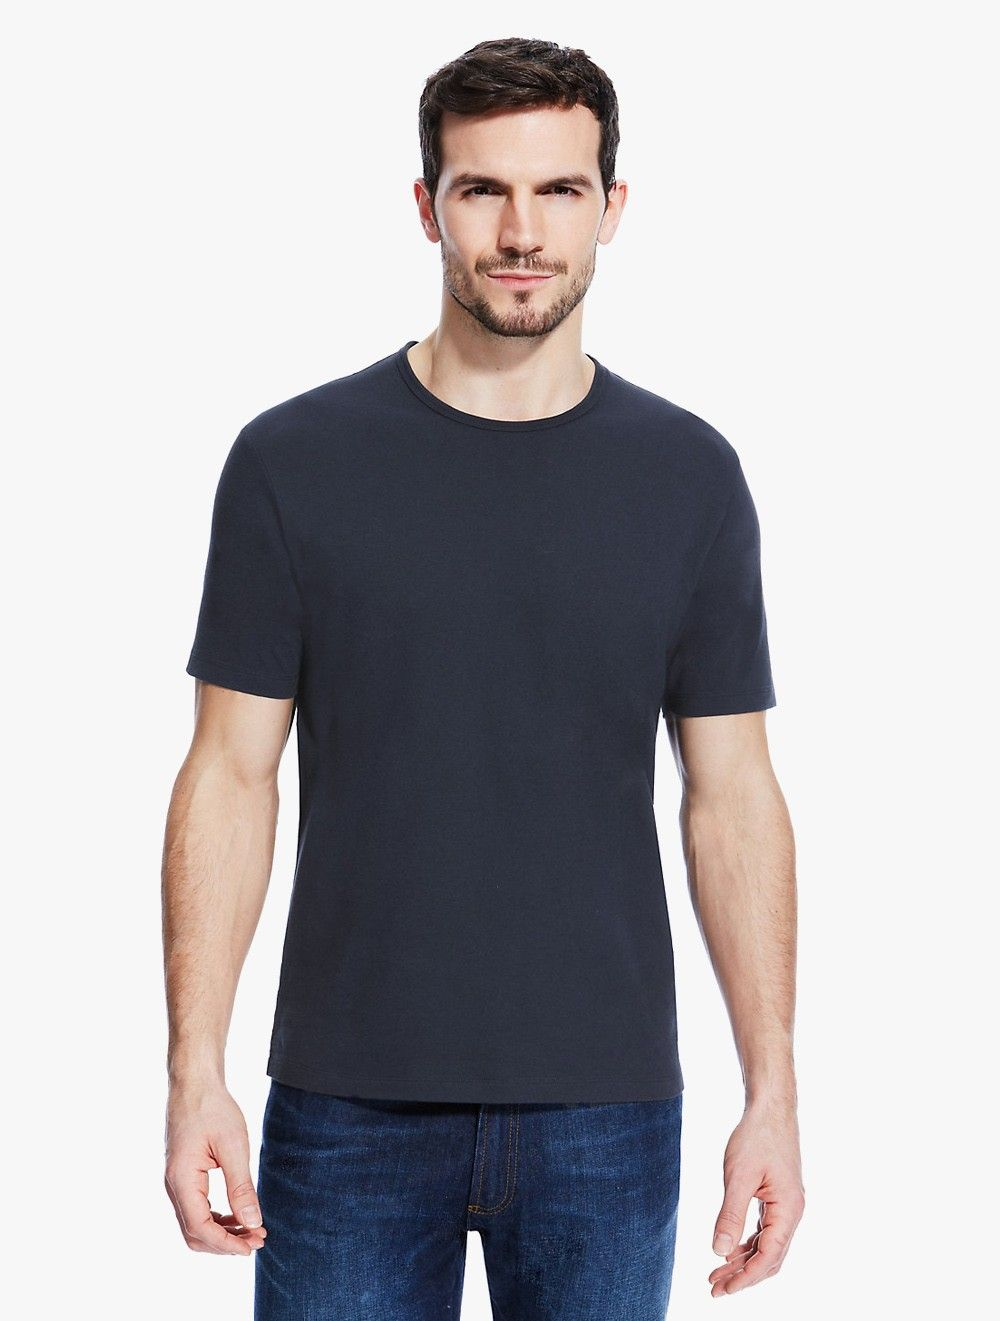 79b8a4ac897 Marks   Spencer  Tailored Fit Pure Cotton Stay Soft  T-Shirt